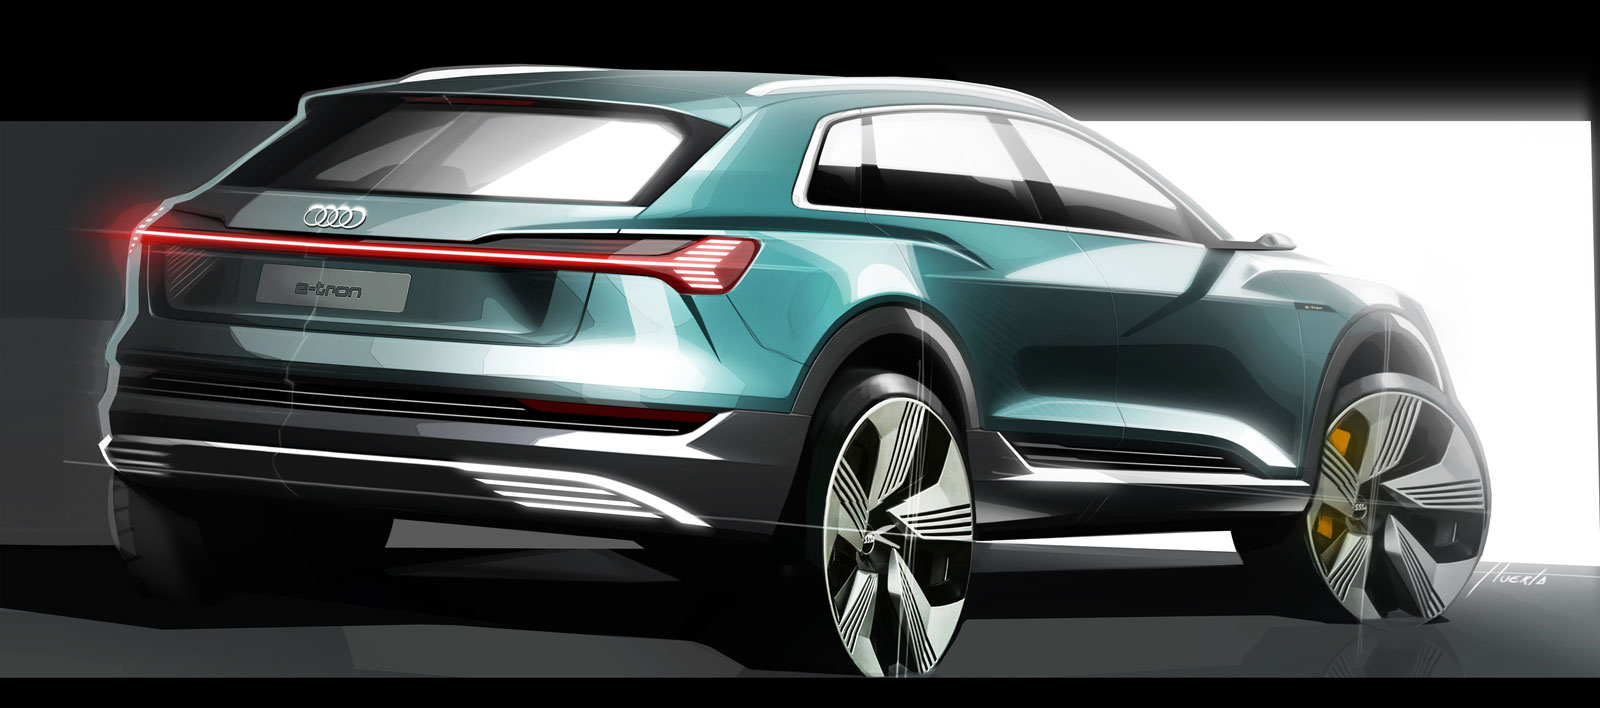 Audi e tron Design Sketch Render